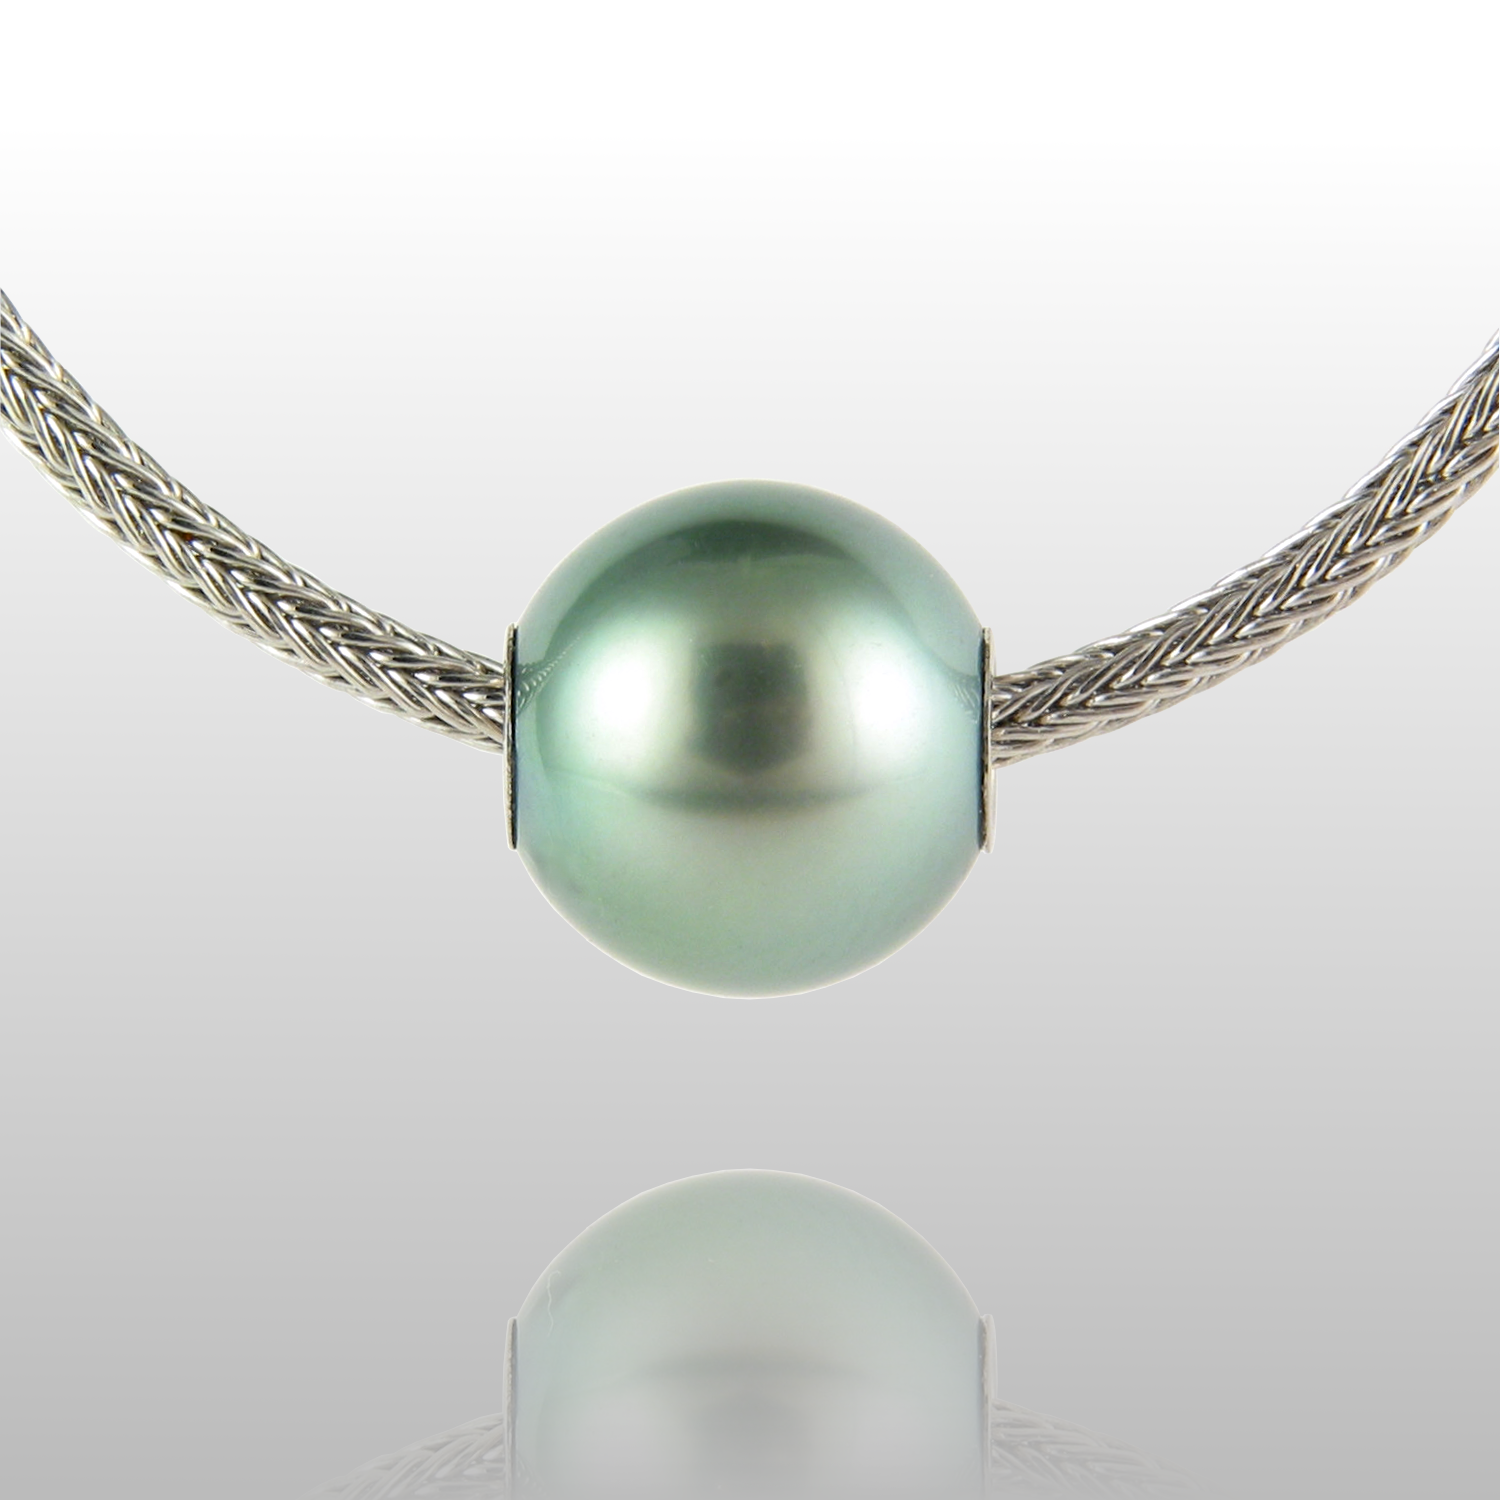 Tahitian Pearl Solitaire Necklace - Hand woven Platinum Chain by Pratima Design Fine Art Jewelry